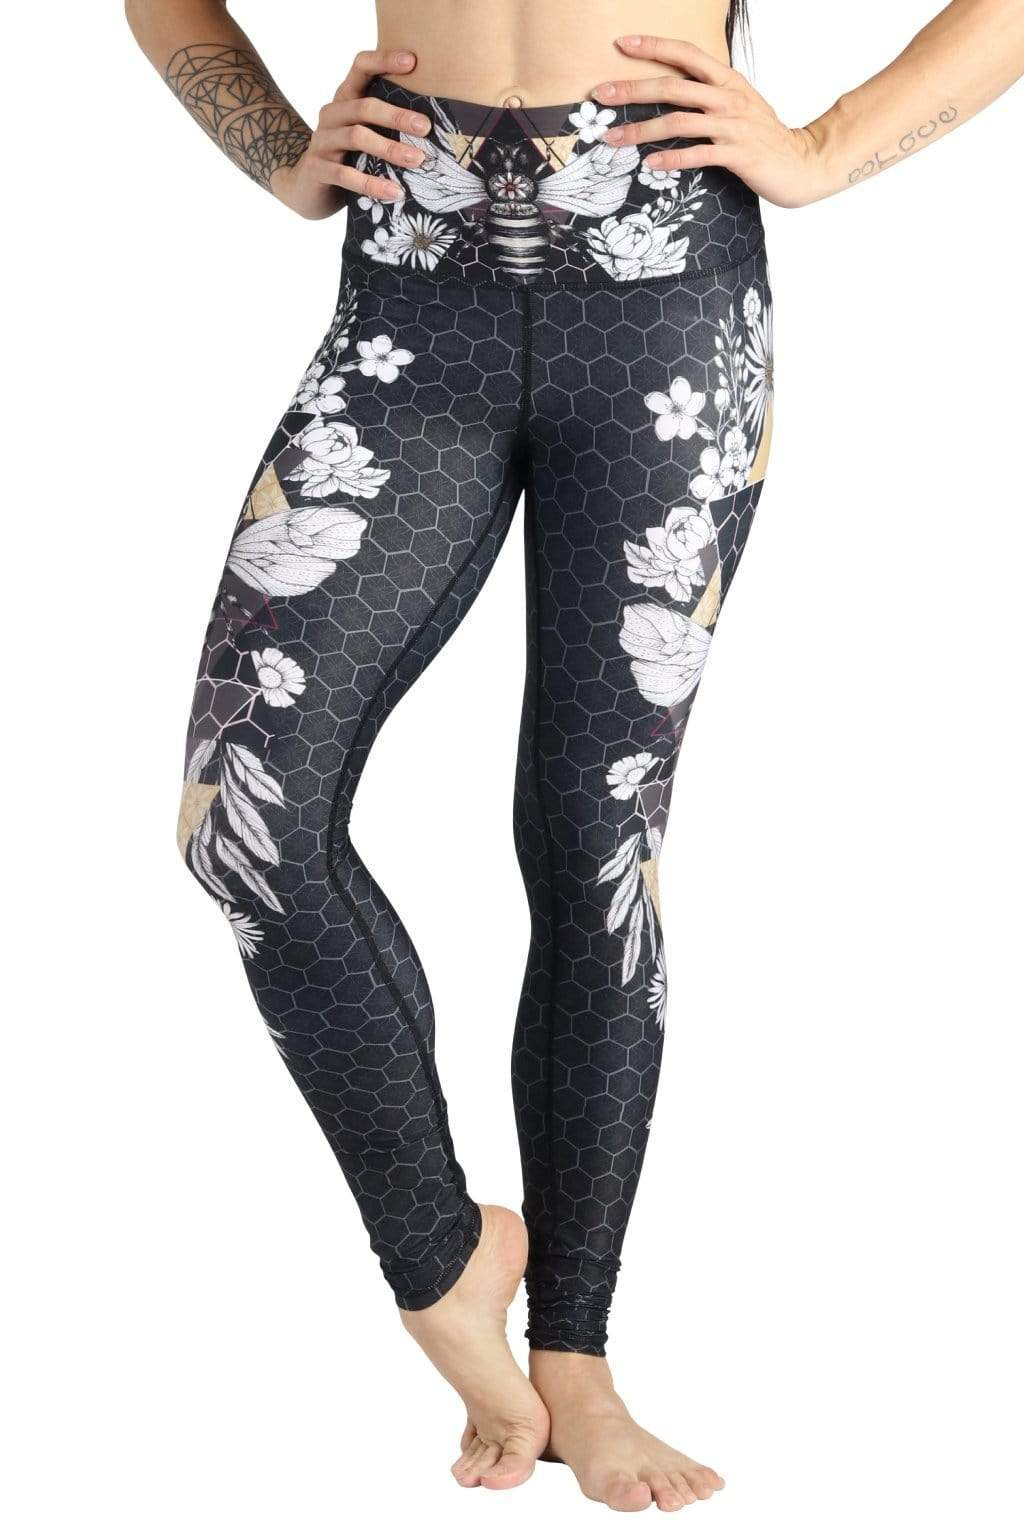 Yoga Democracy Leggings Beeloved Blackout Printed Yoga Legging